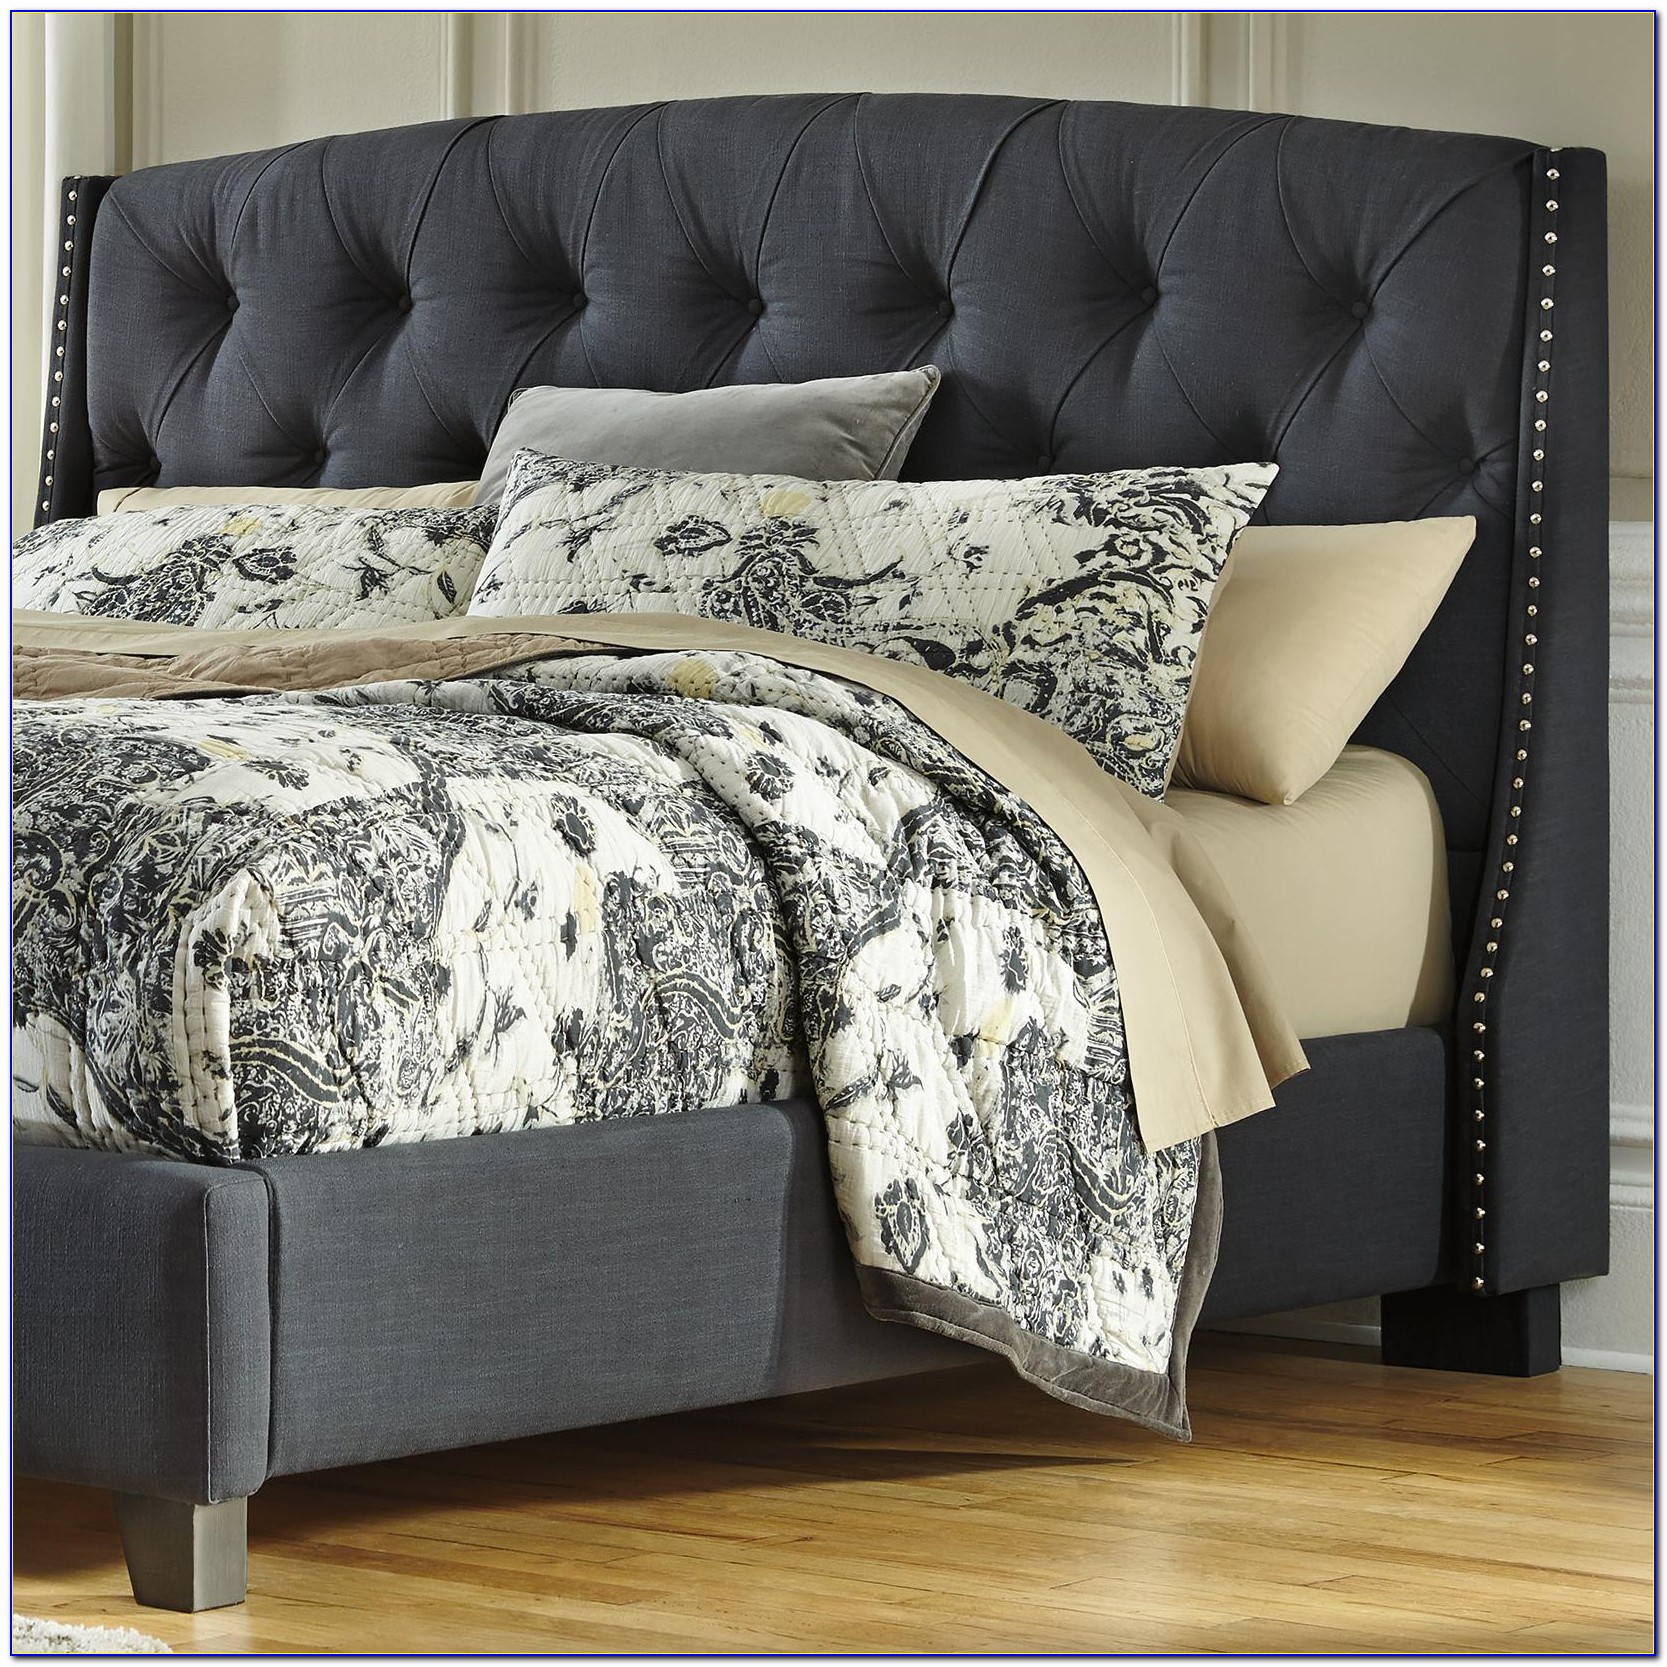 Queen Upholstered Headboard With Nailhead Trim